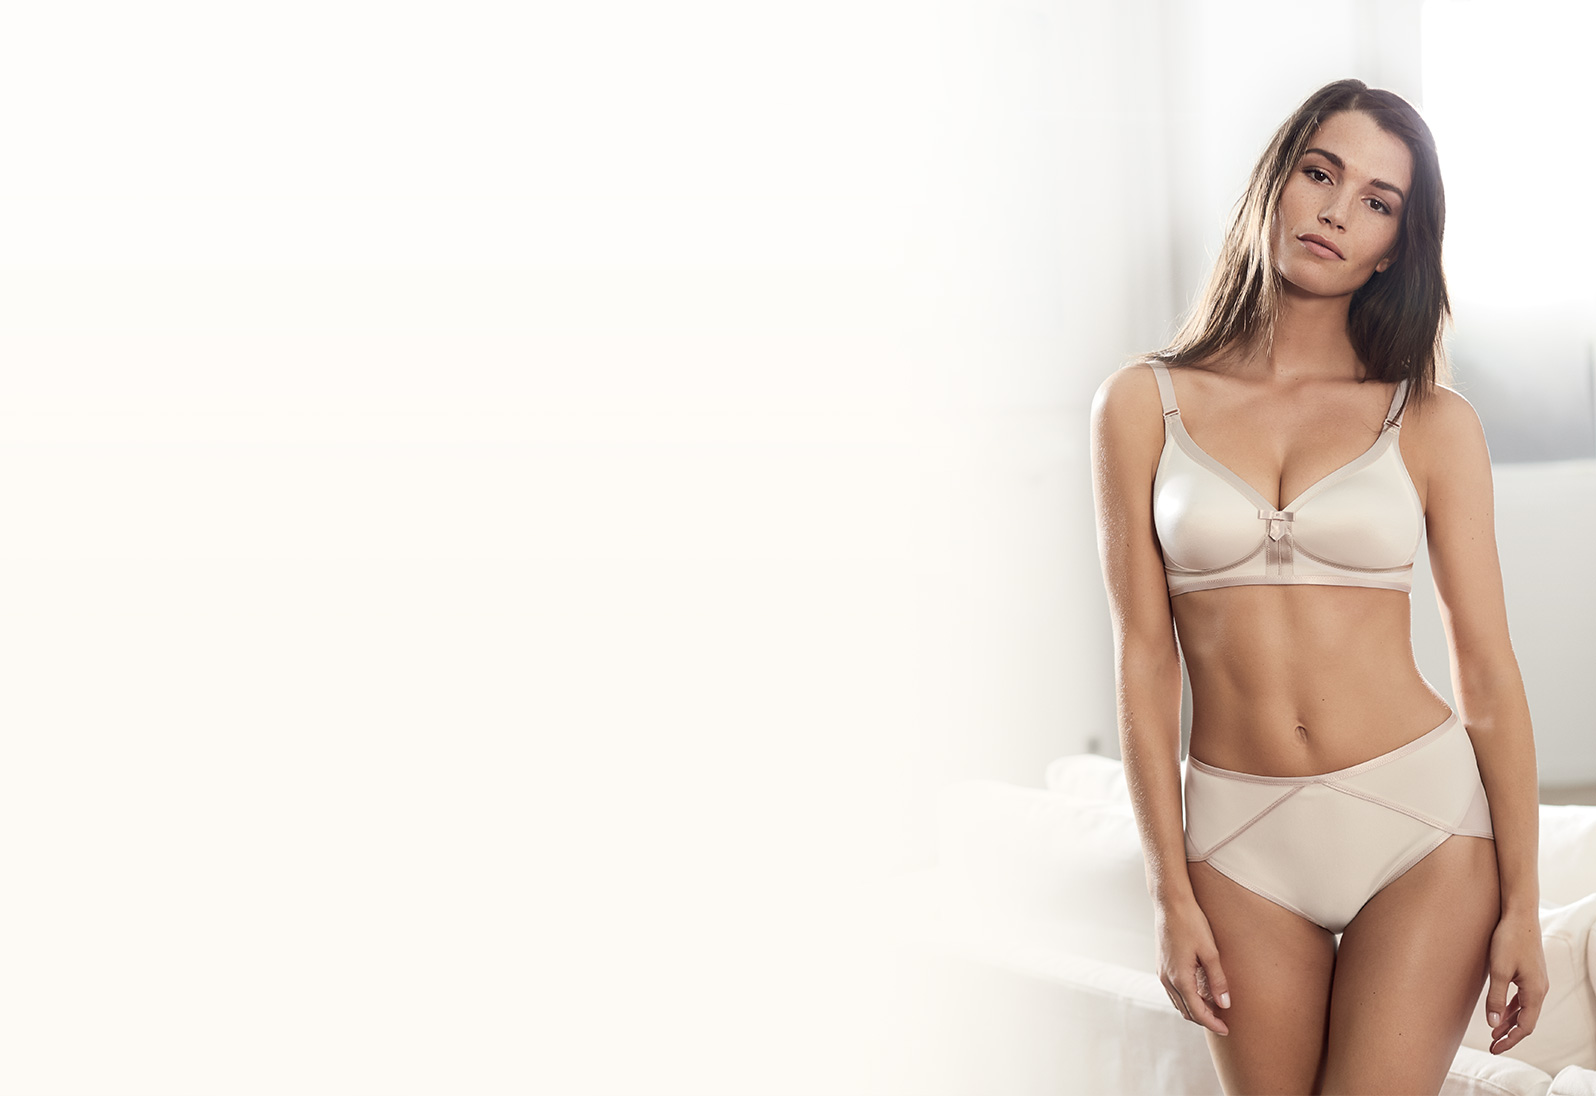 Ensemble de lingerie Ideal Beauty de Playtex